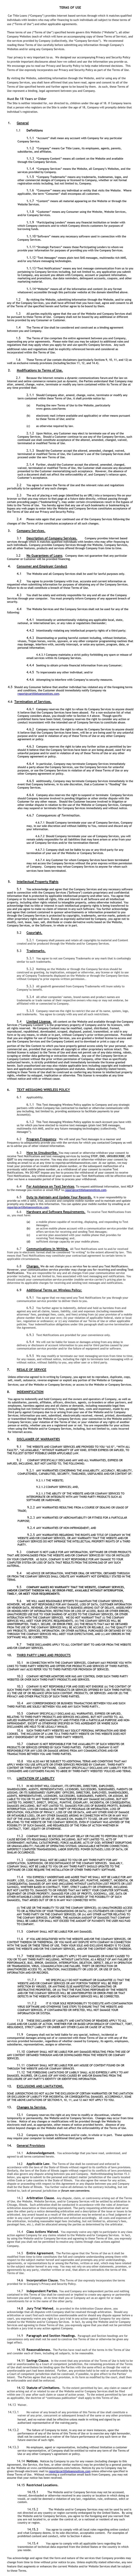 terms-and-conditions-1